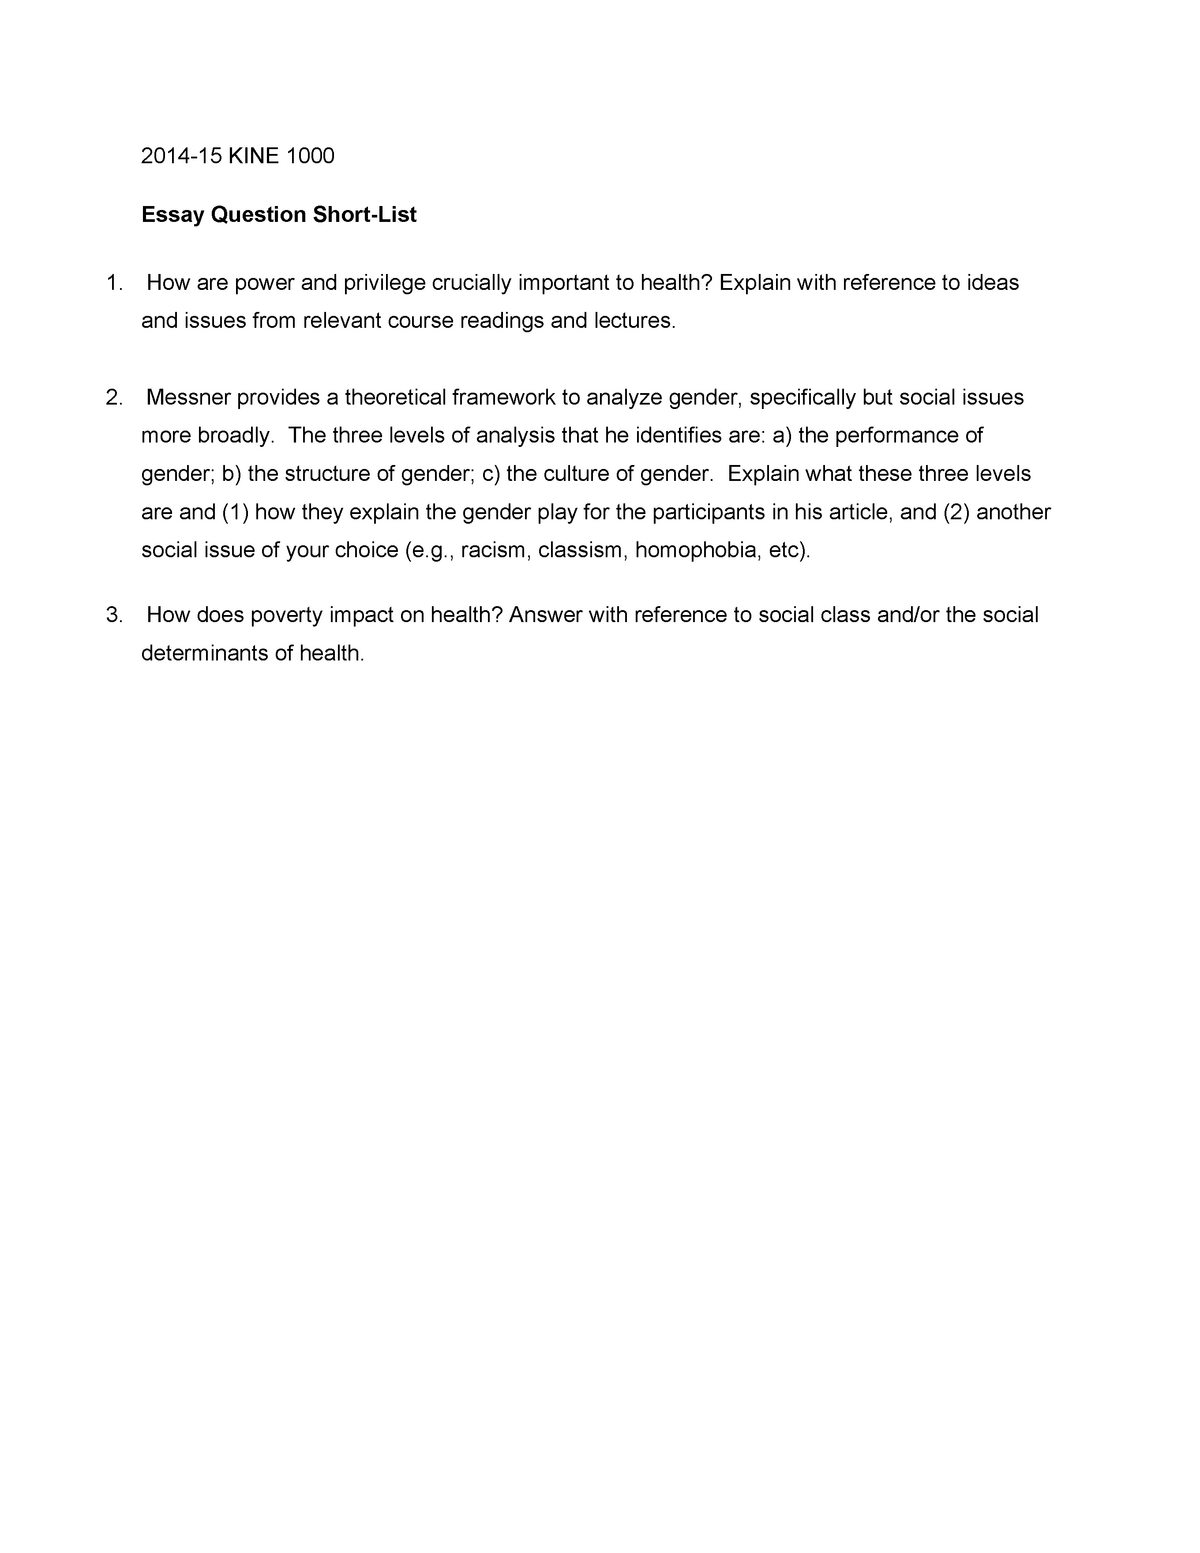 Exam 2015 - Hh/Kine 1000: Sociocultural Perspectives in